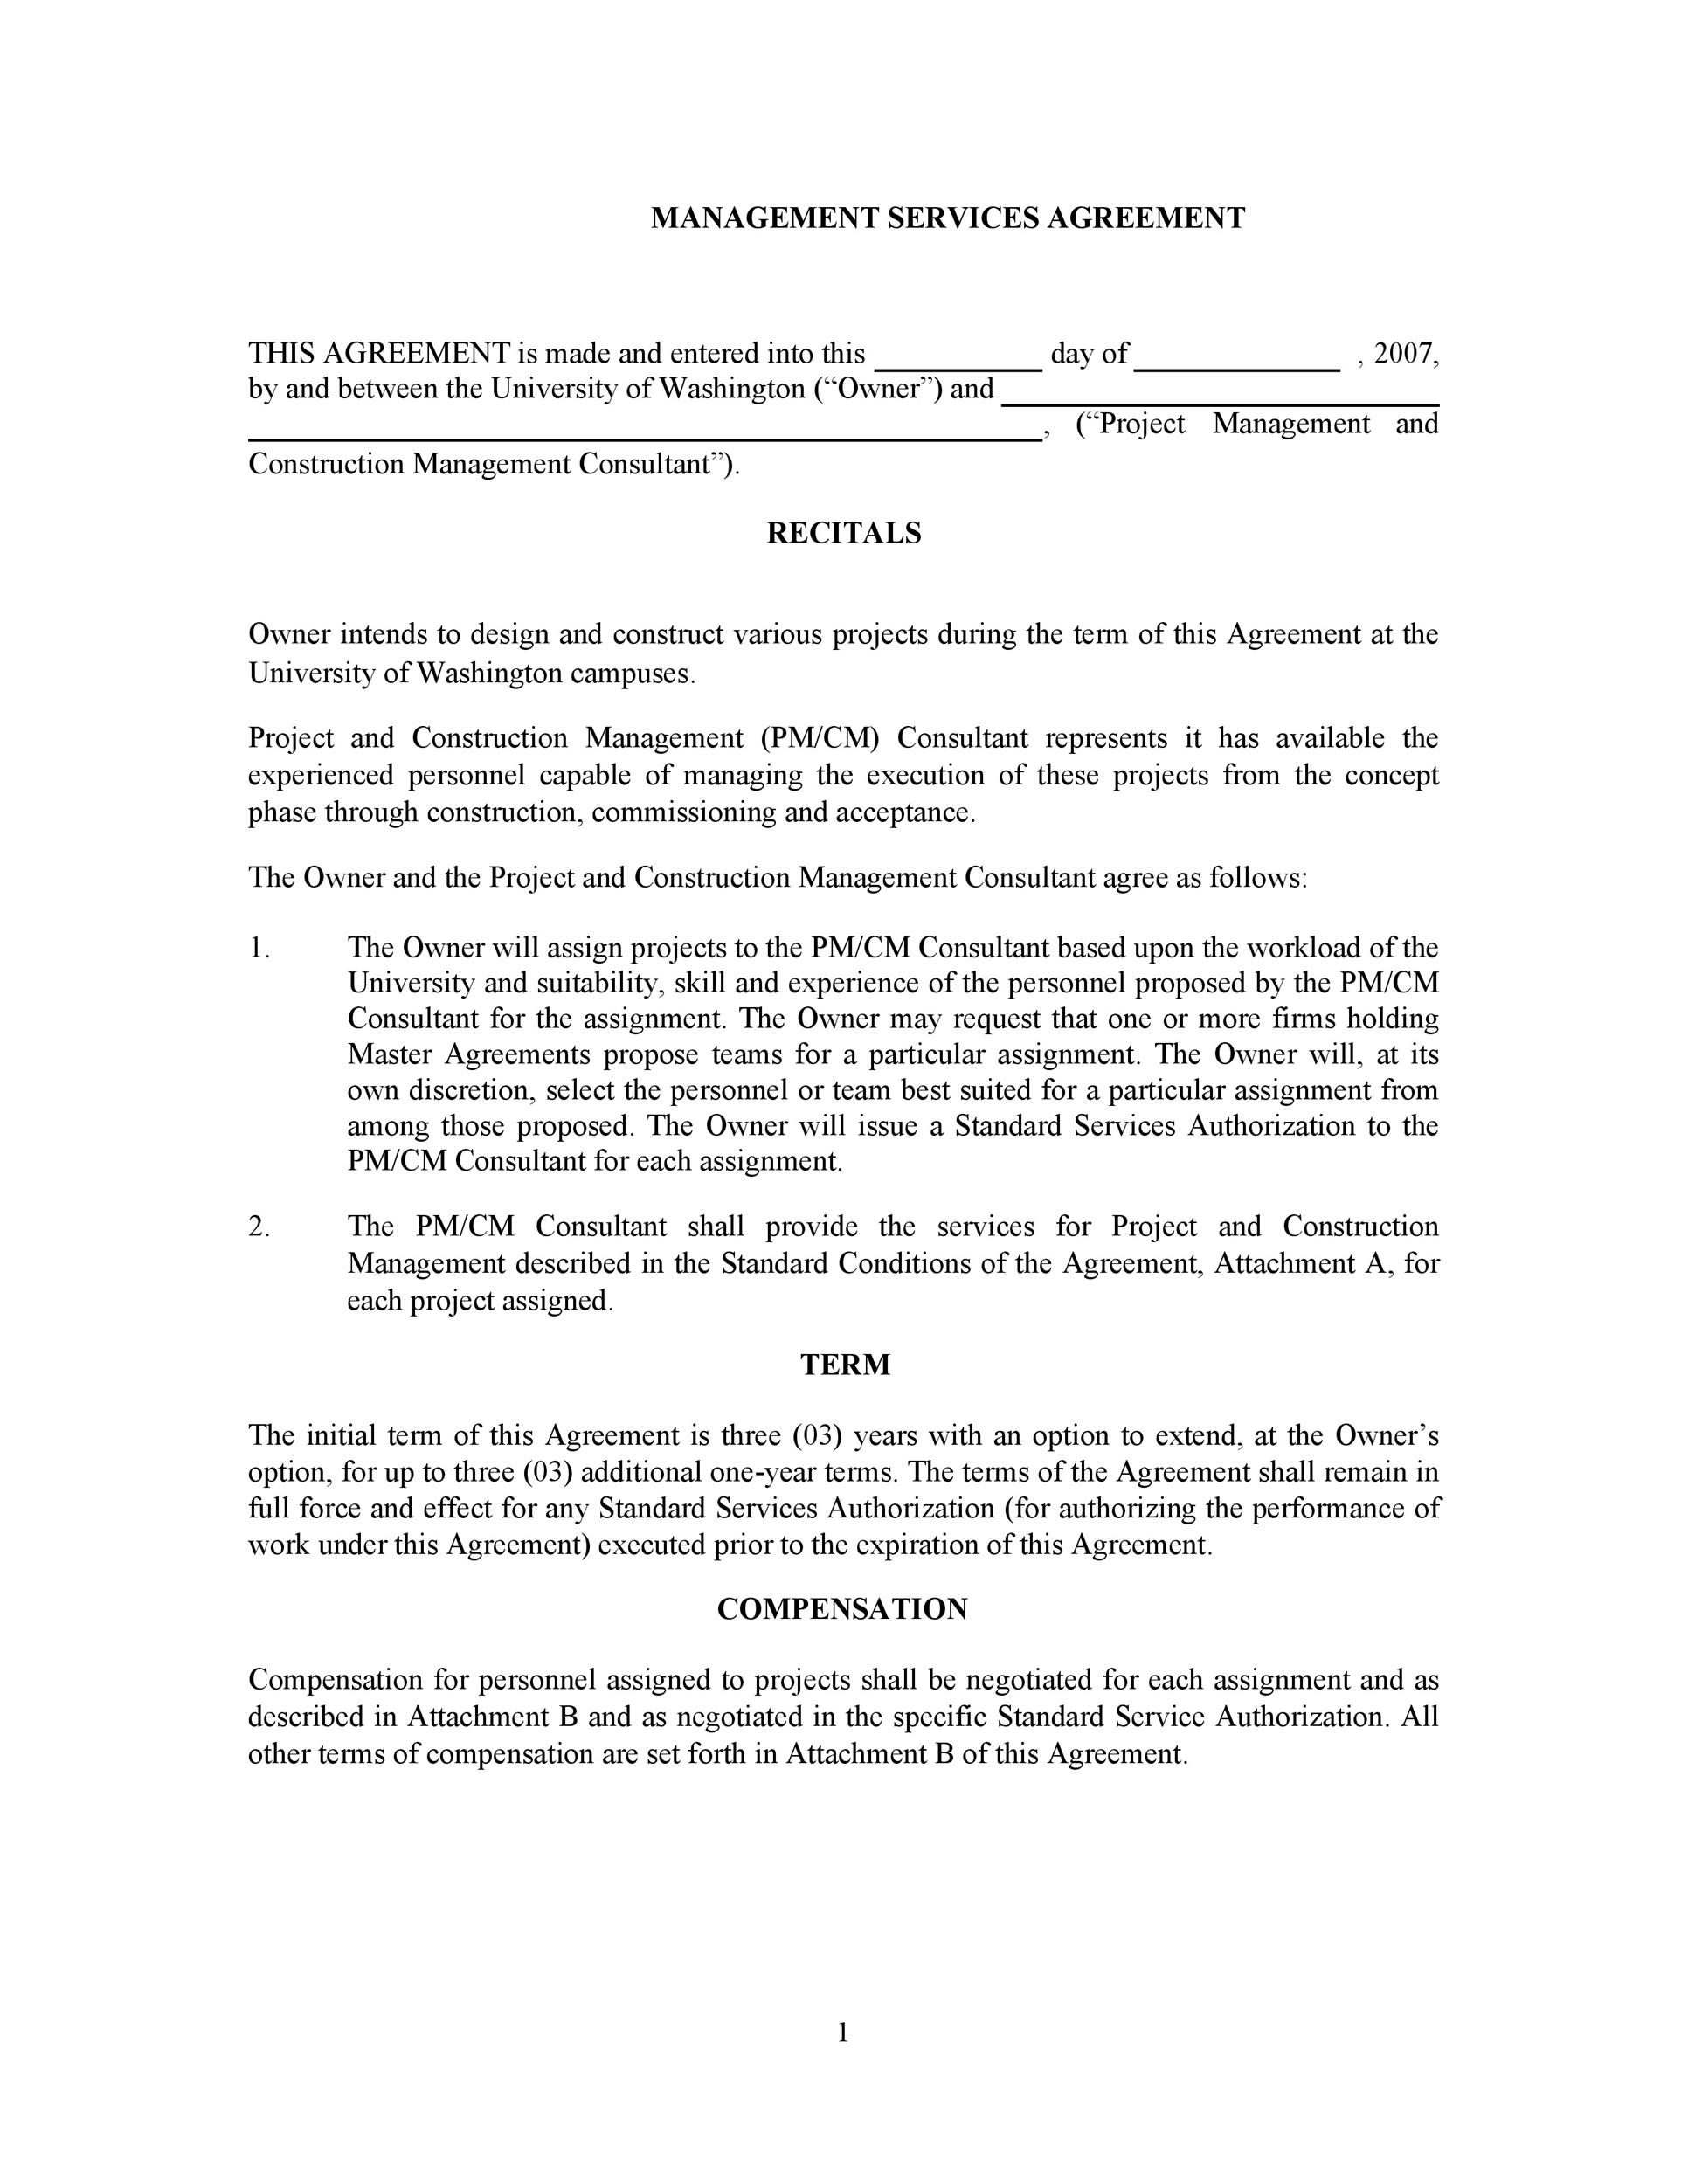 Construction Management Agreement Construction Management